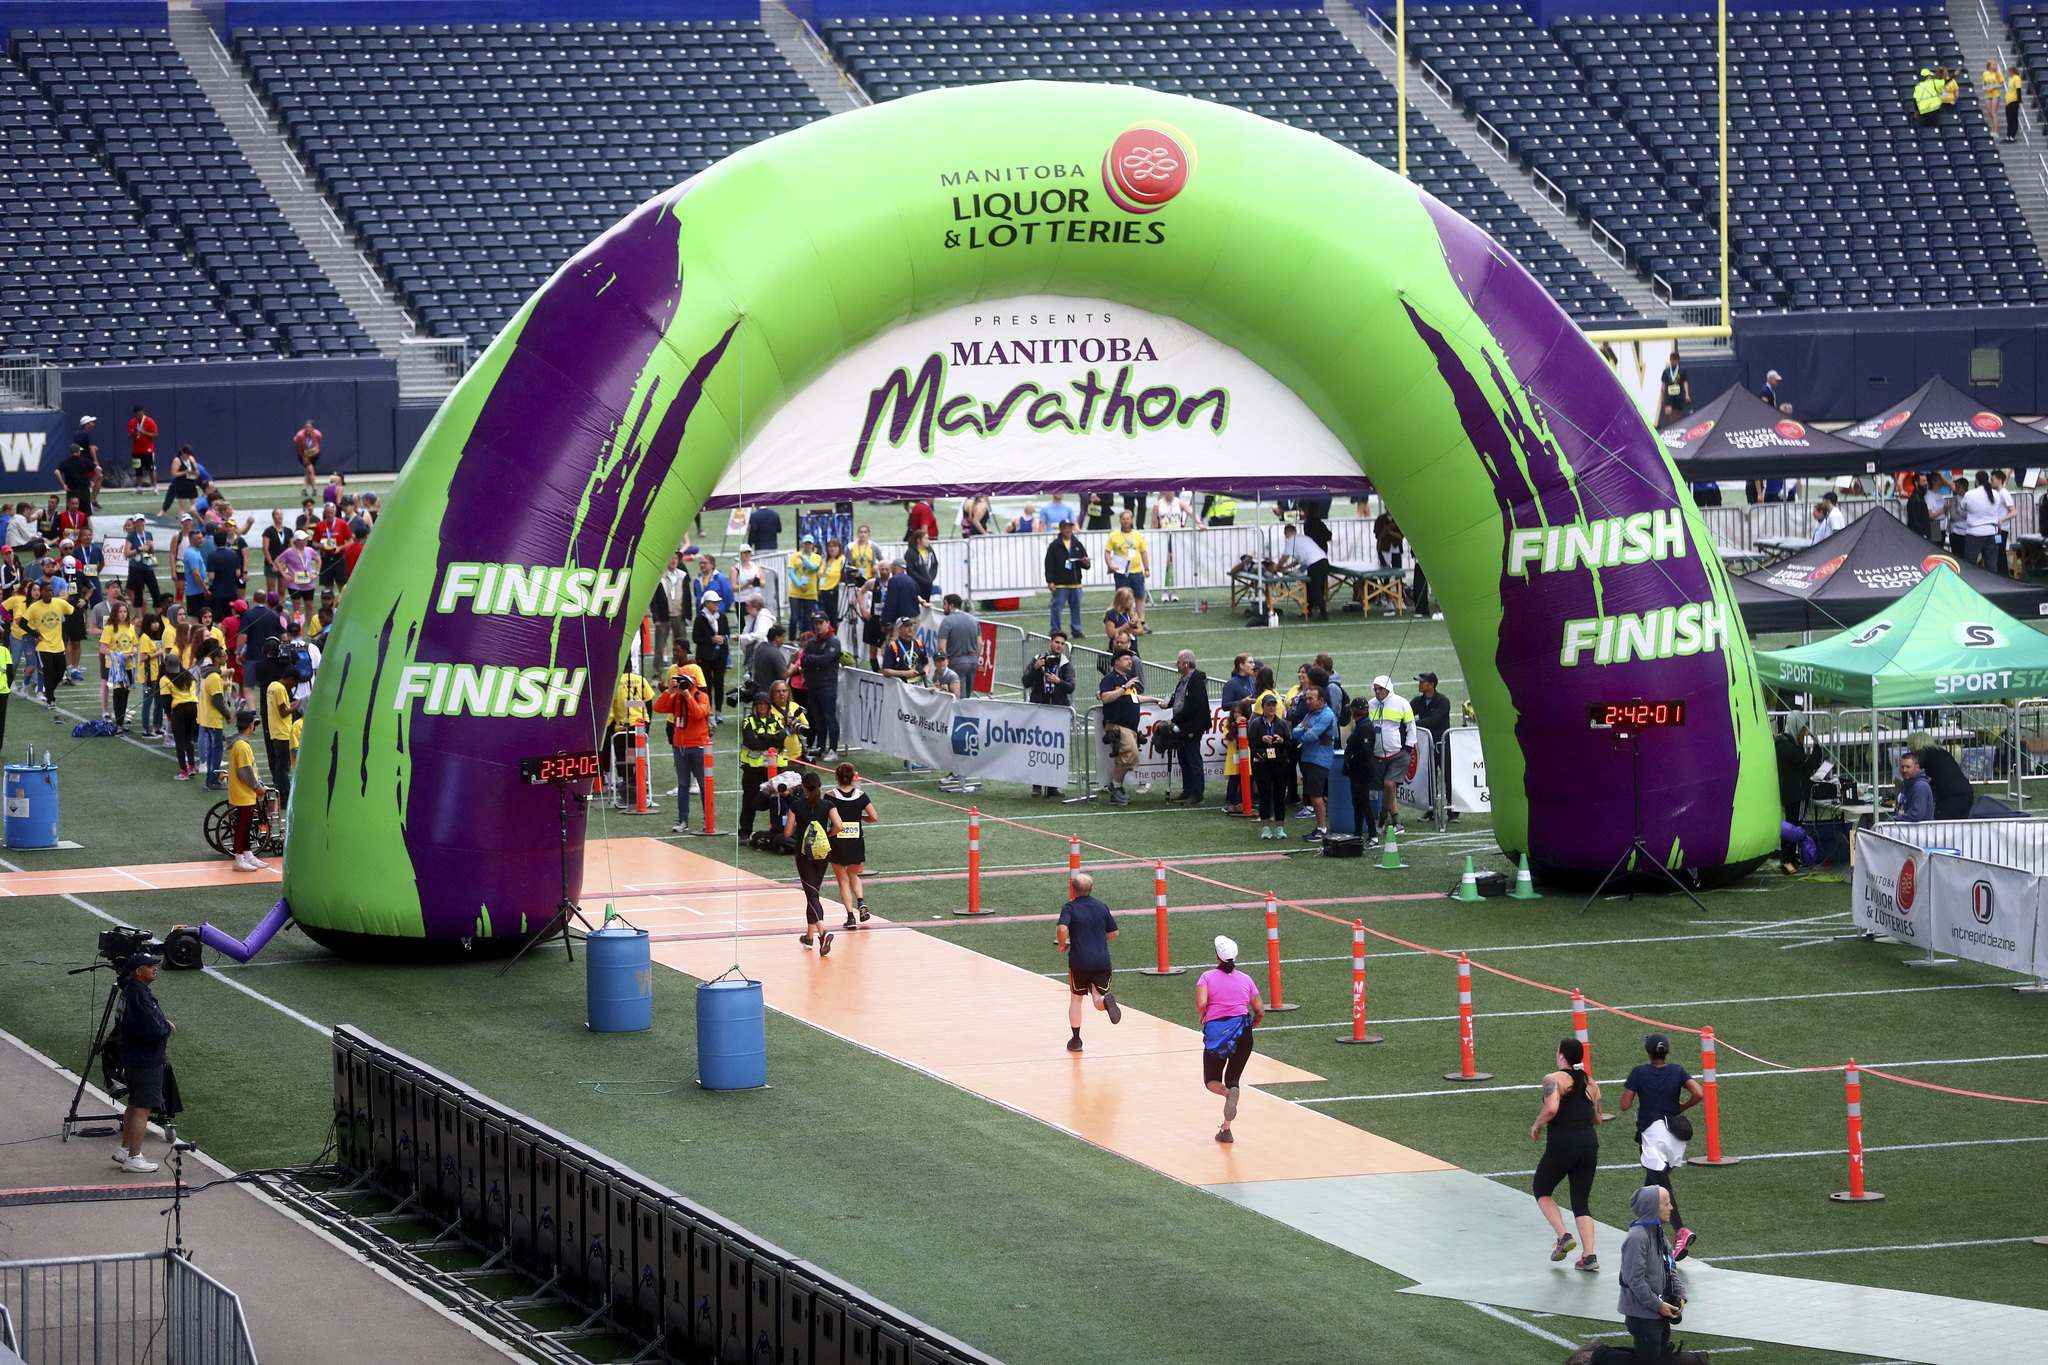 There will be no big finish at IG Field this year for the Manitoba Marathon. The event, already postponed by the COVID-19 pandemic, will now take place as a virtual event.